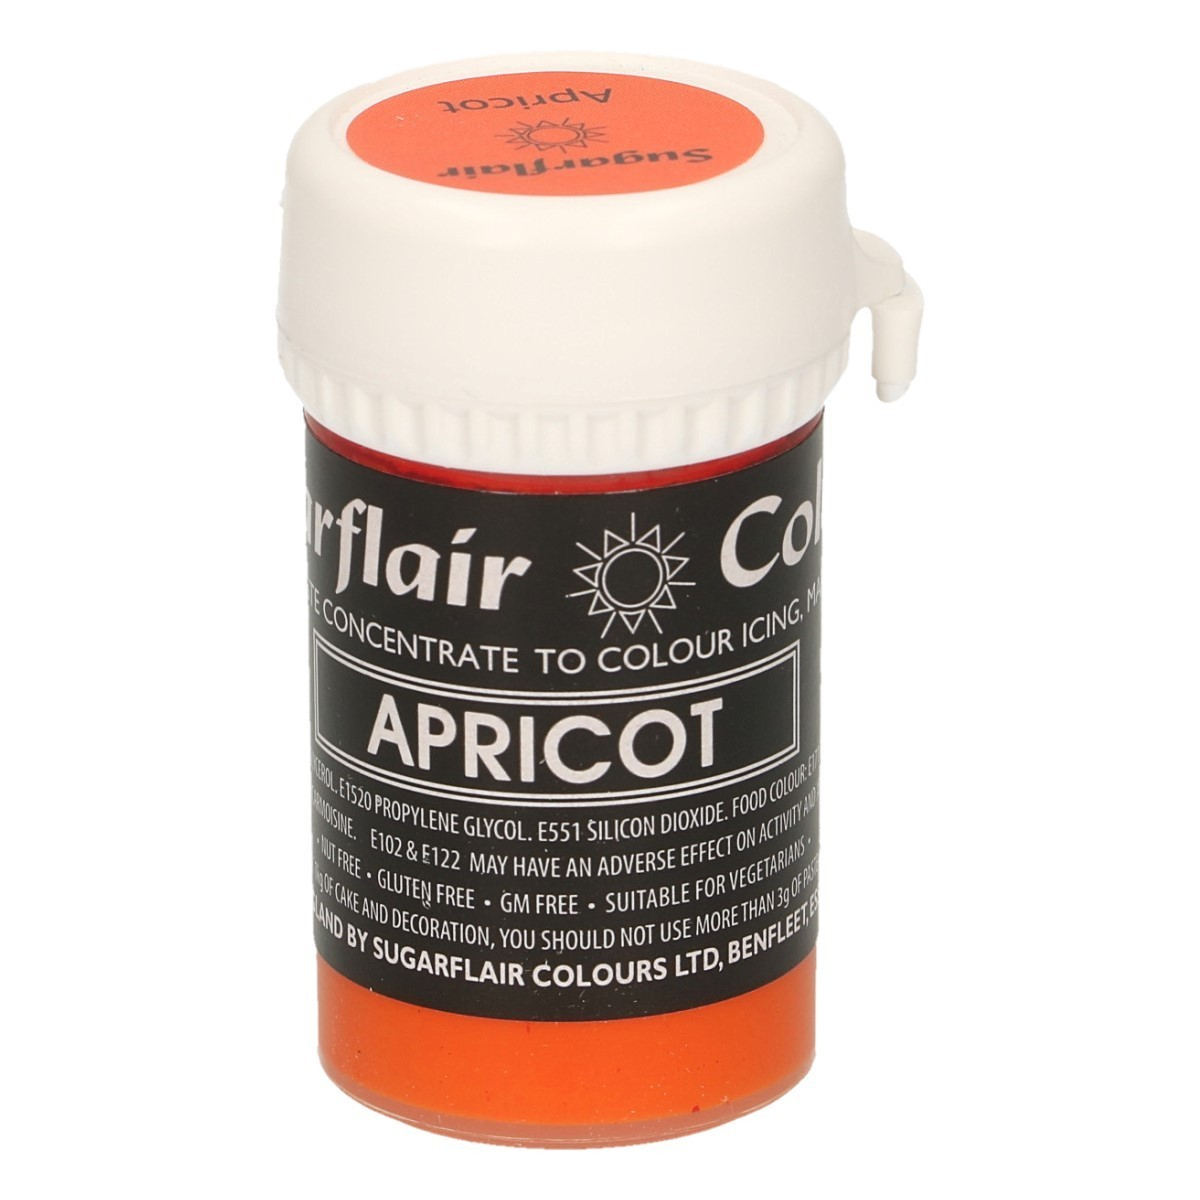 Sugarflair Concentrated Paste Apricot.jpg